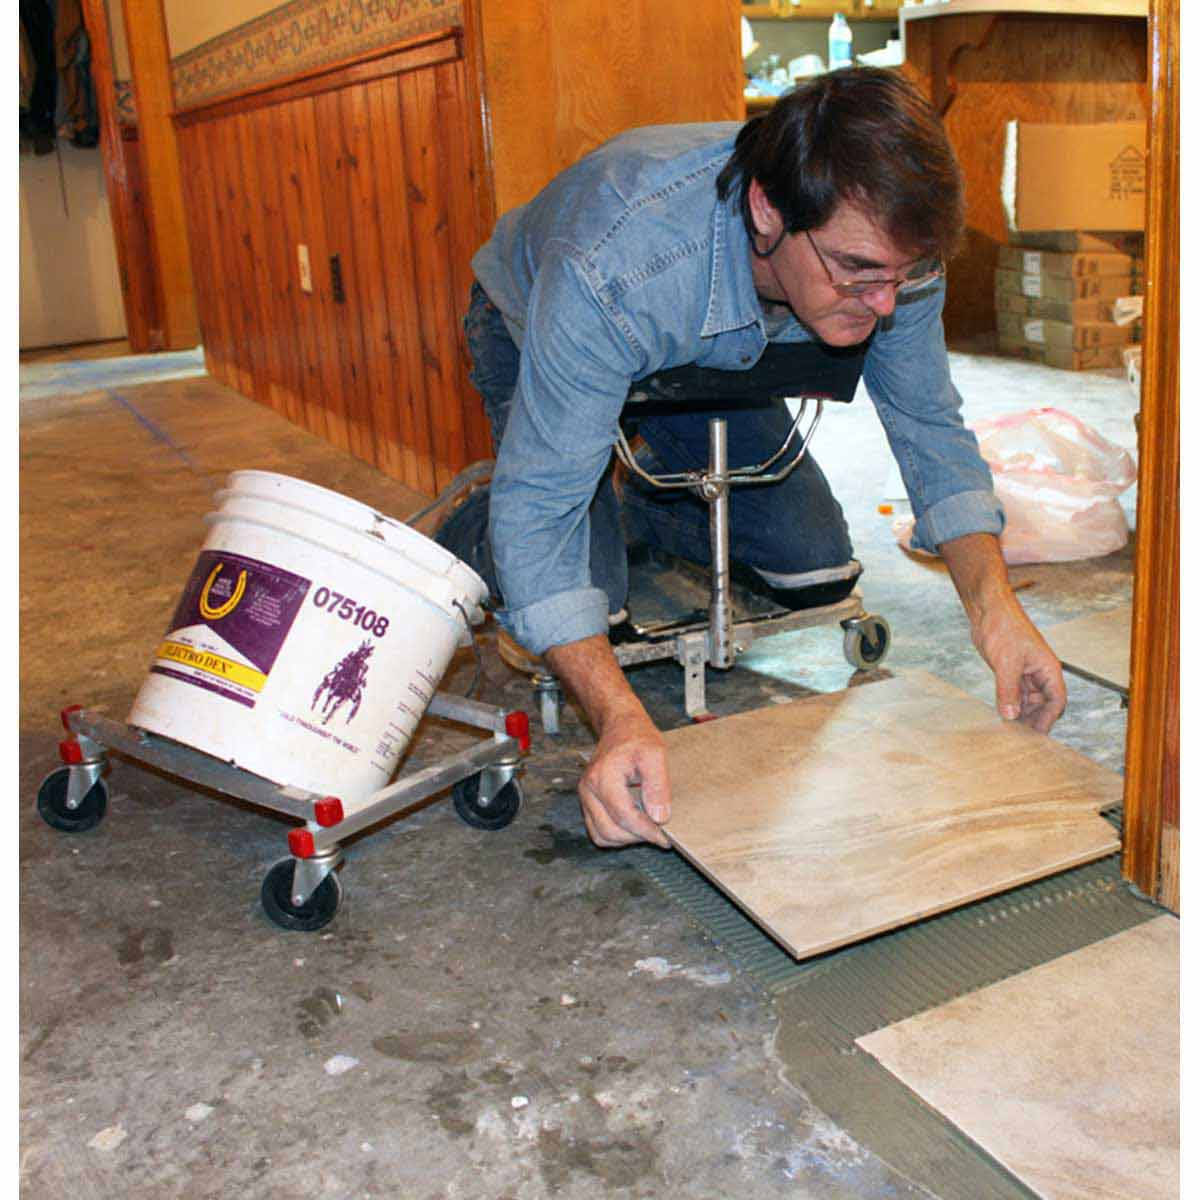 laying tile RAC-A-TAC chest support